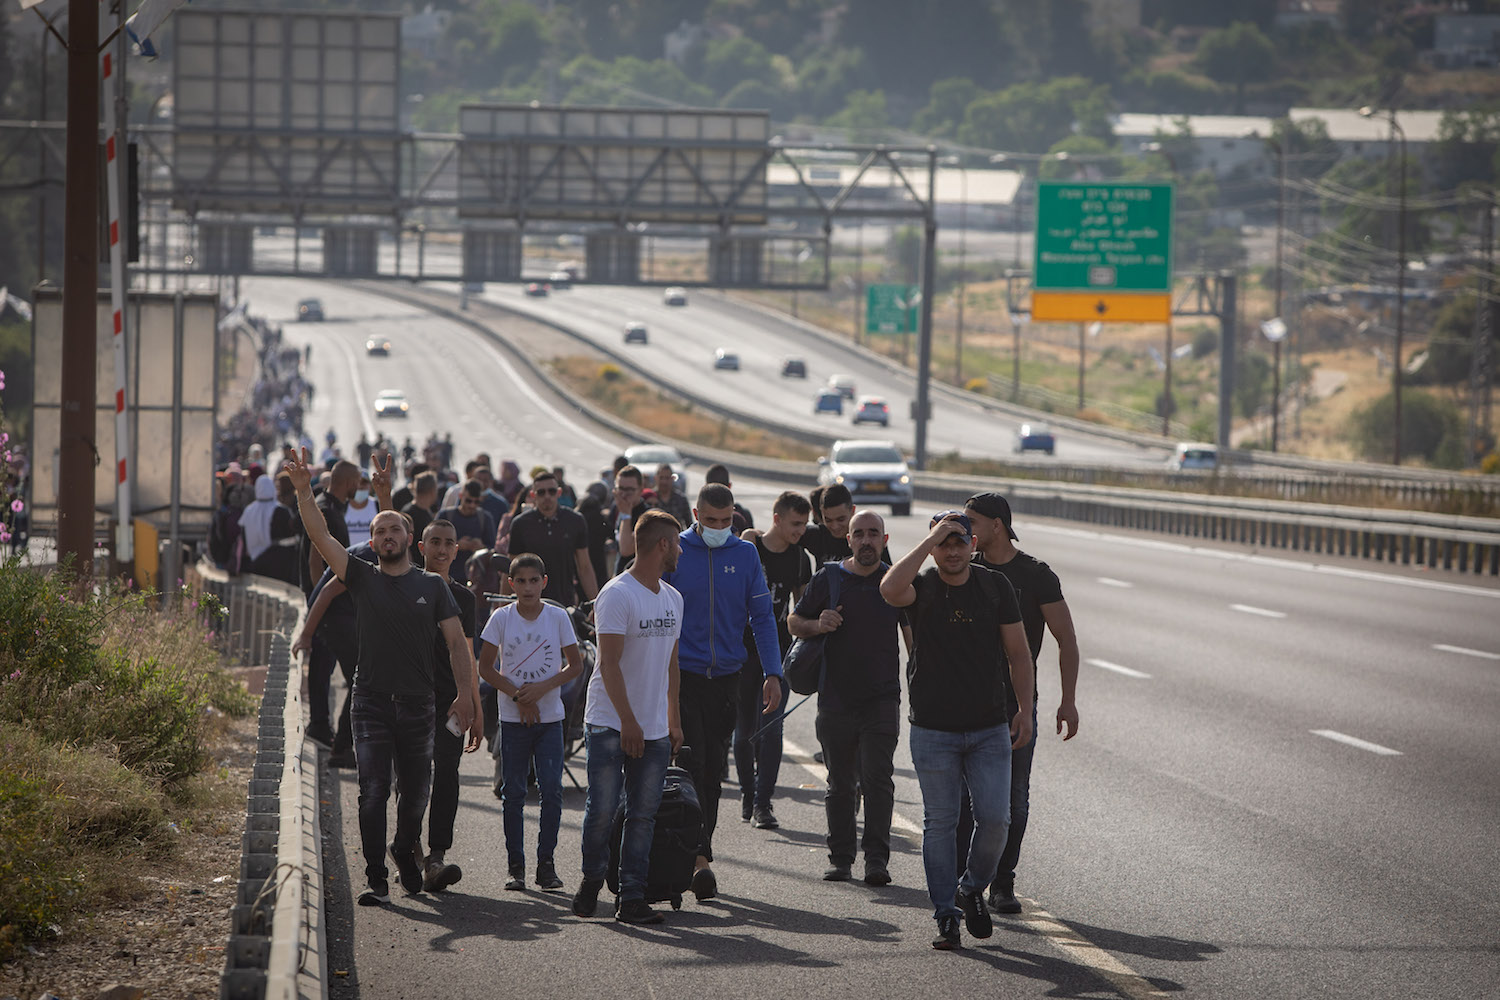 Hundreds of Palestinian citizens of Israel marching on Road 1 toward Jerusalem for Ramadan prayers after Israeli police blocked traffic into the city to prevent additional Palestinians from entering, May 8, 2021. (Noam Revkin Fenton/Flash90)